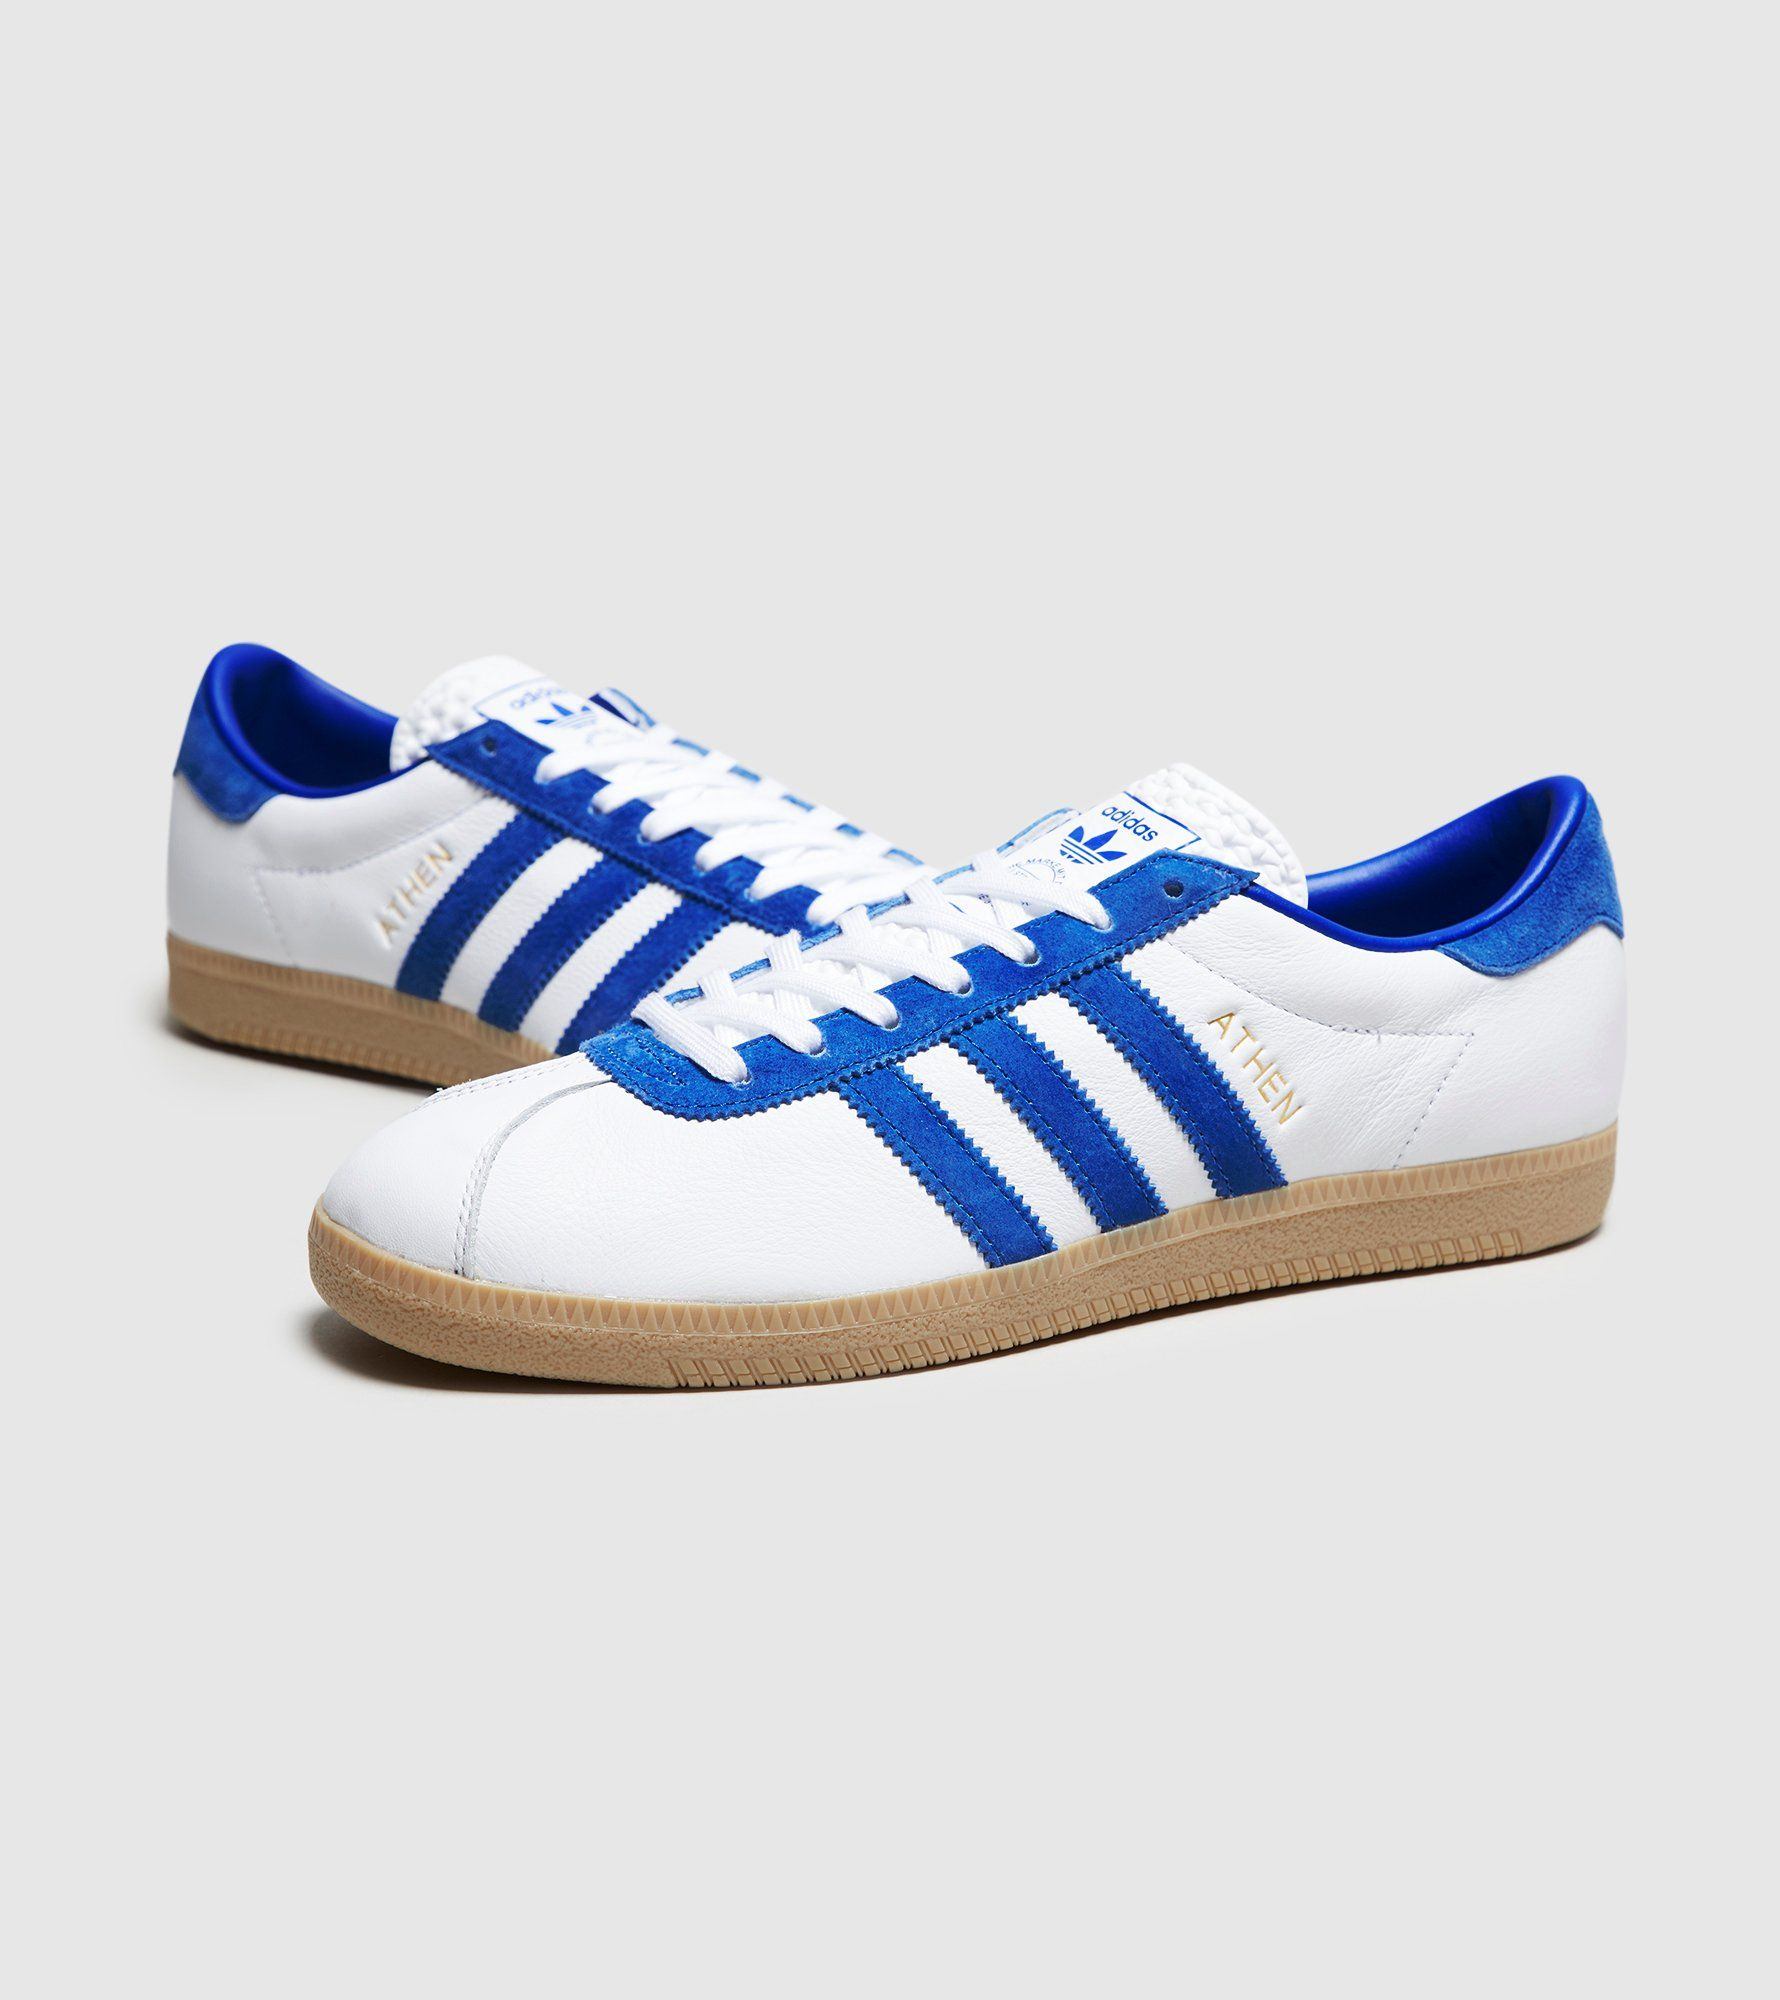 adidas athens for sale